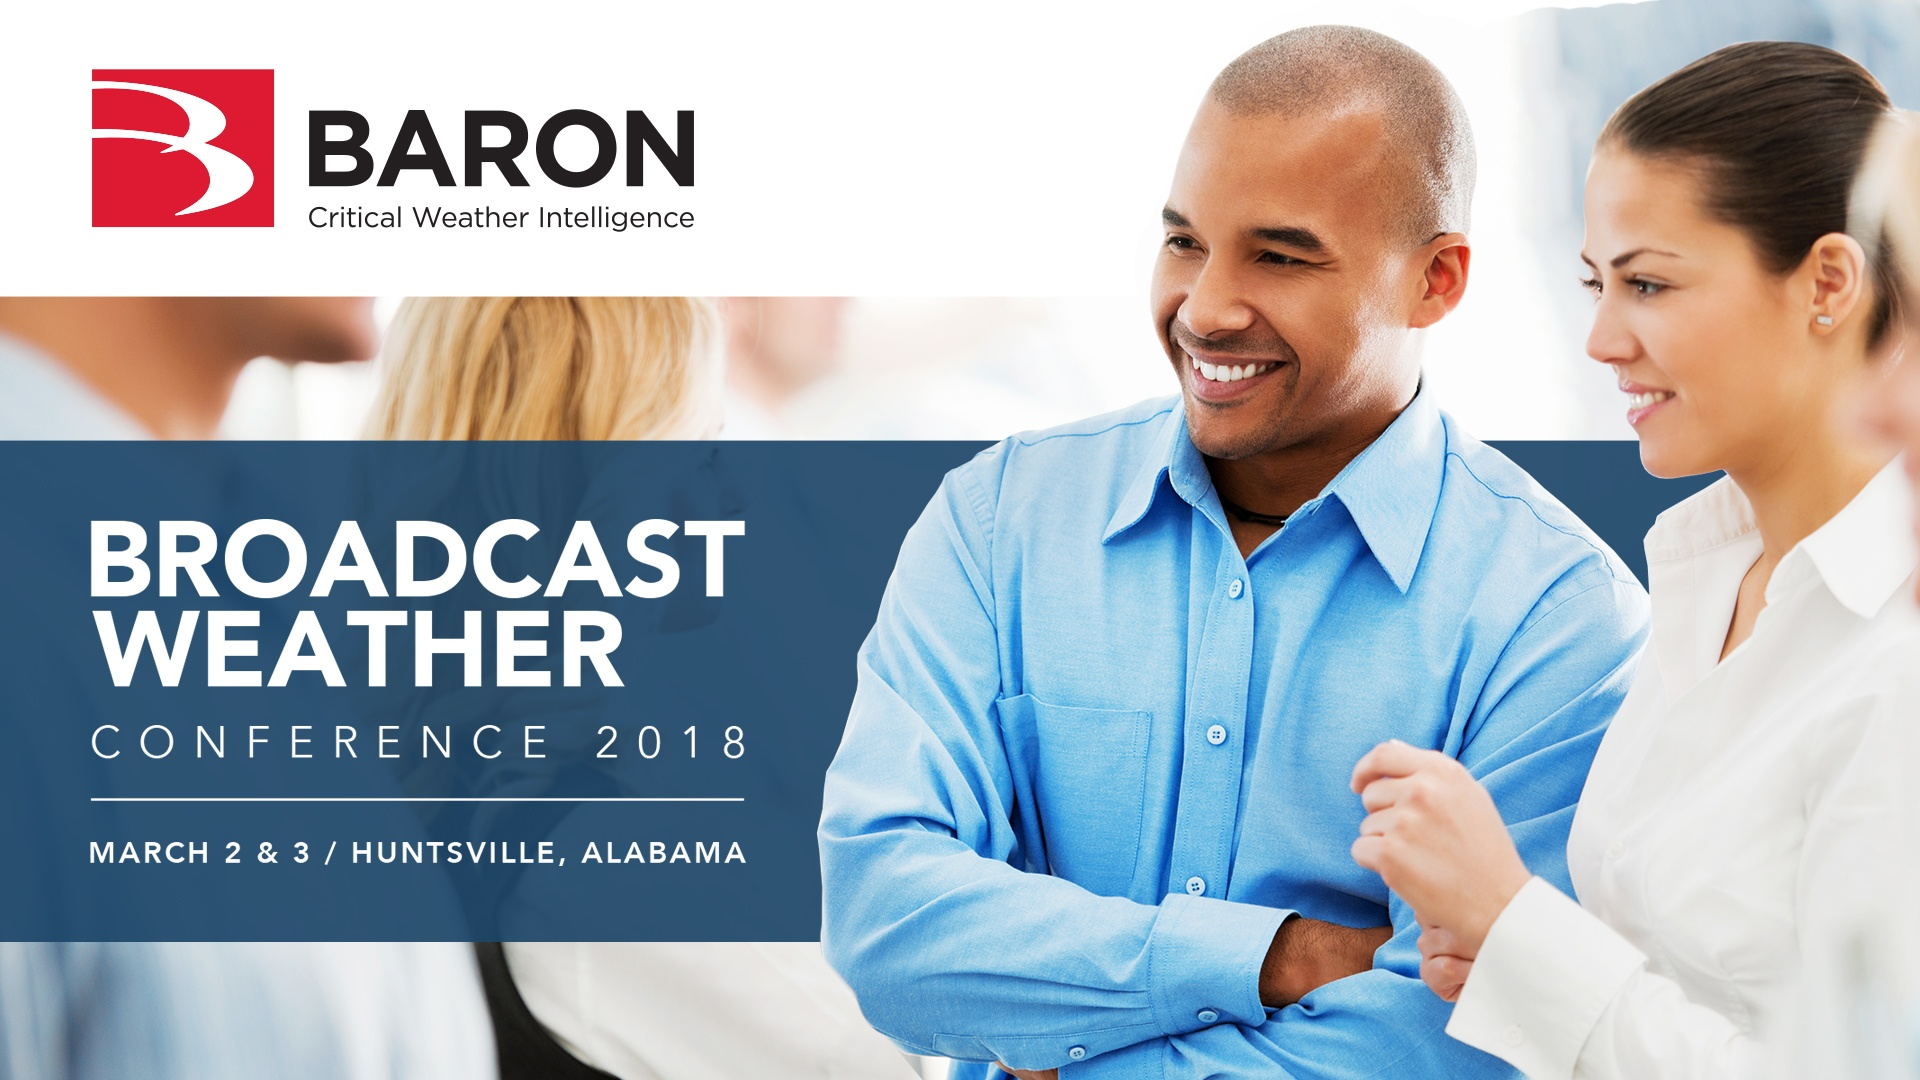 Baron Weather Conference 2017